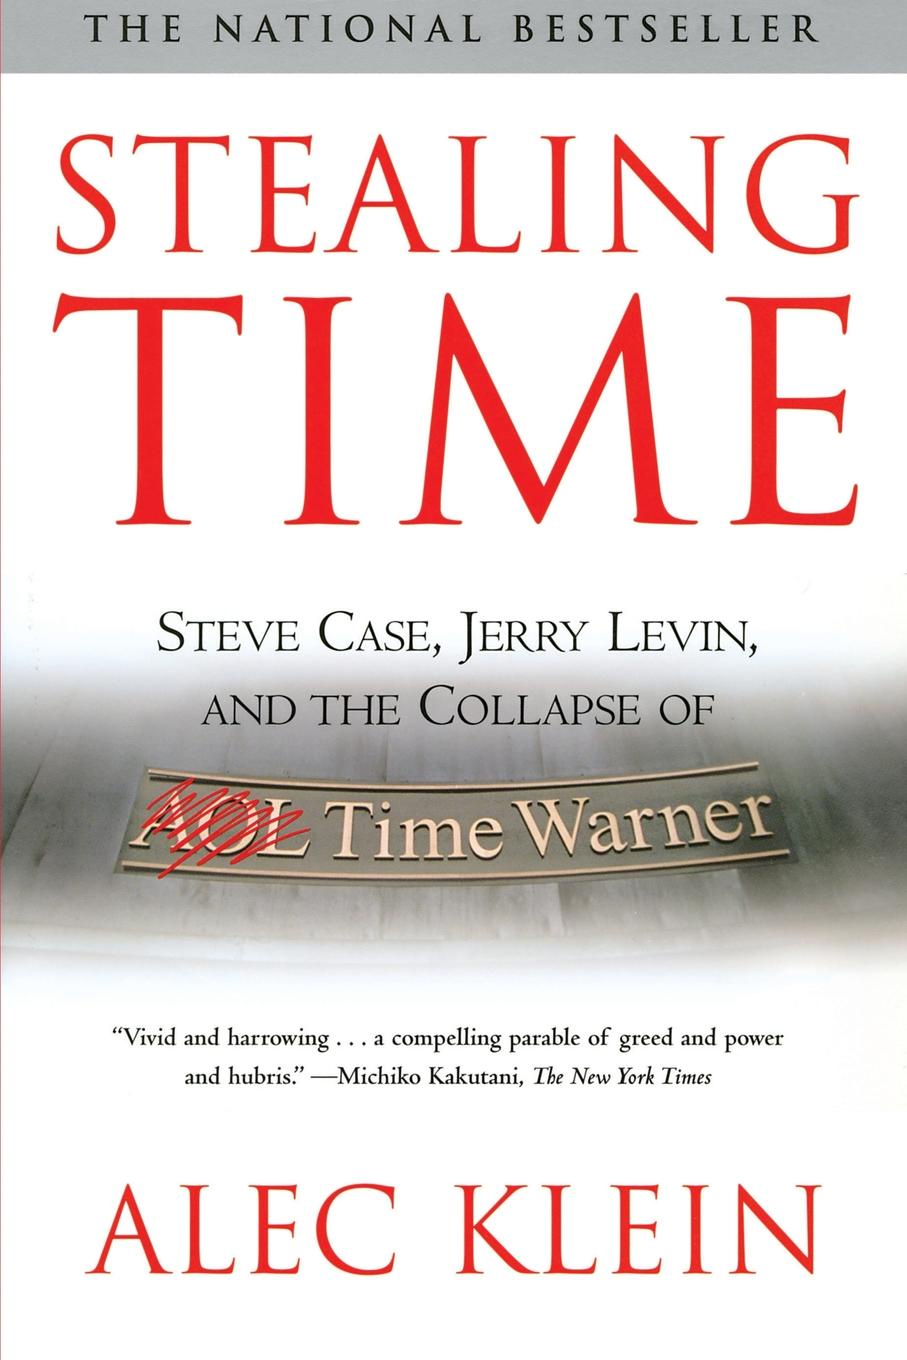 Alec Klein Stealing Time. Steve Case, Jerry Levin, and the Collapse of AOL Time Warner (Revised) стив форберт steve forbert the place and time